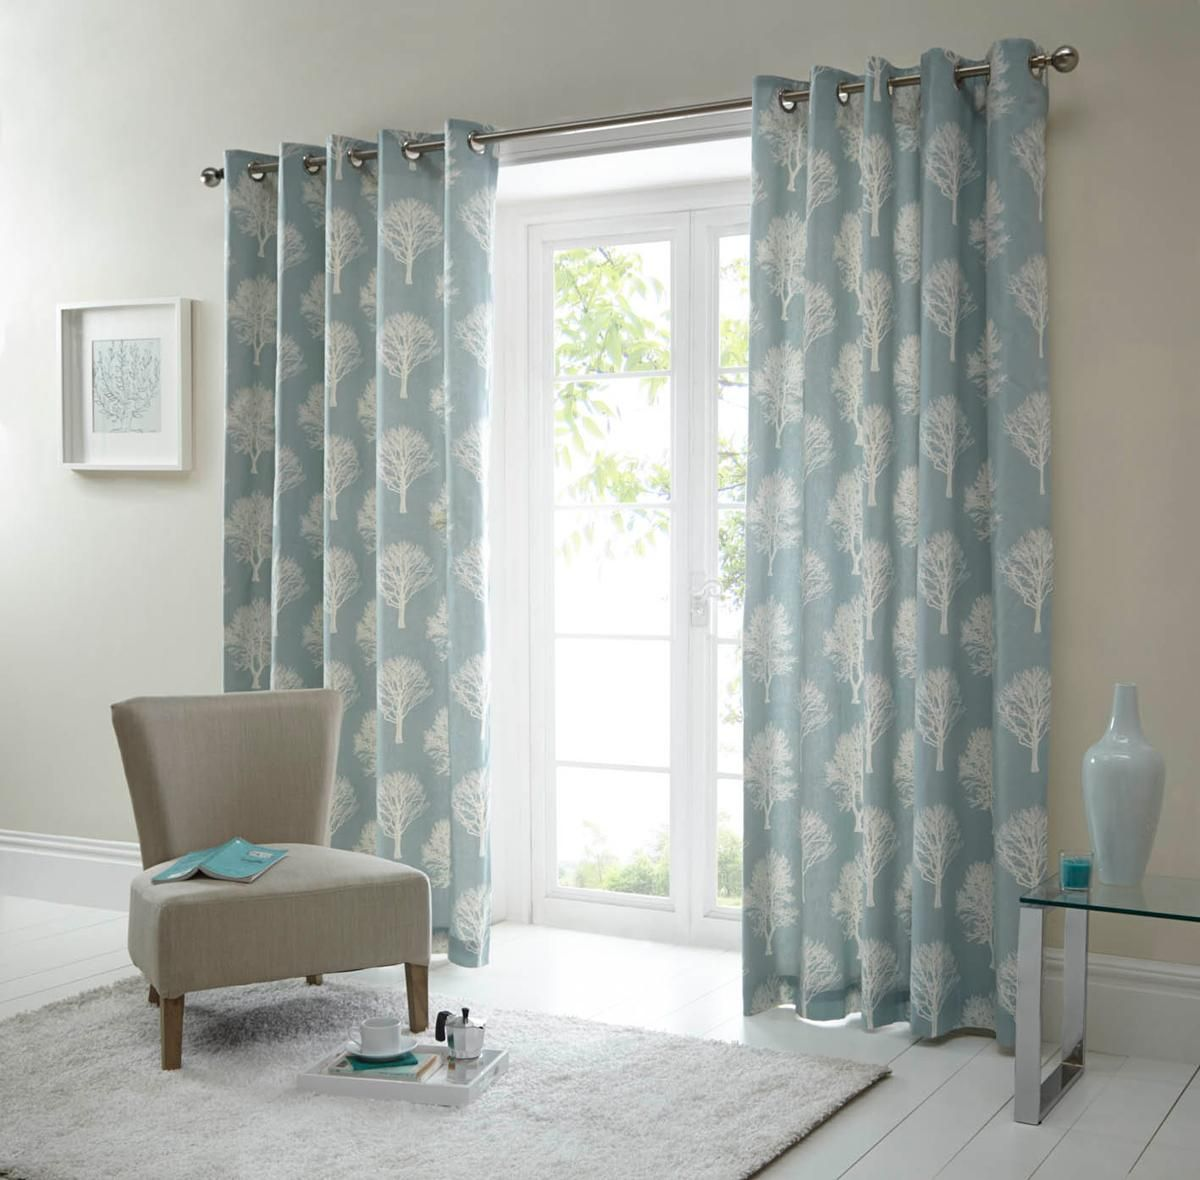 Woodland Ready Made Eyelet Curtains In Duck Egg